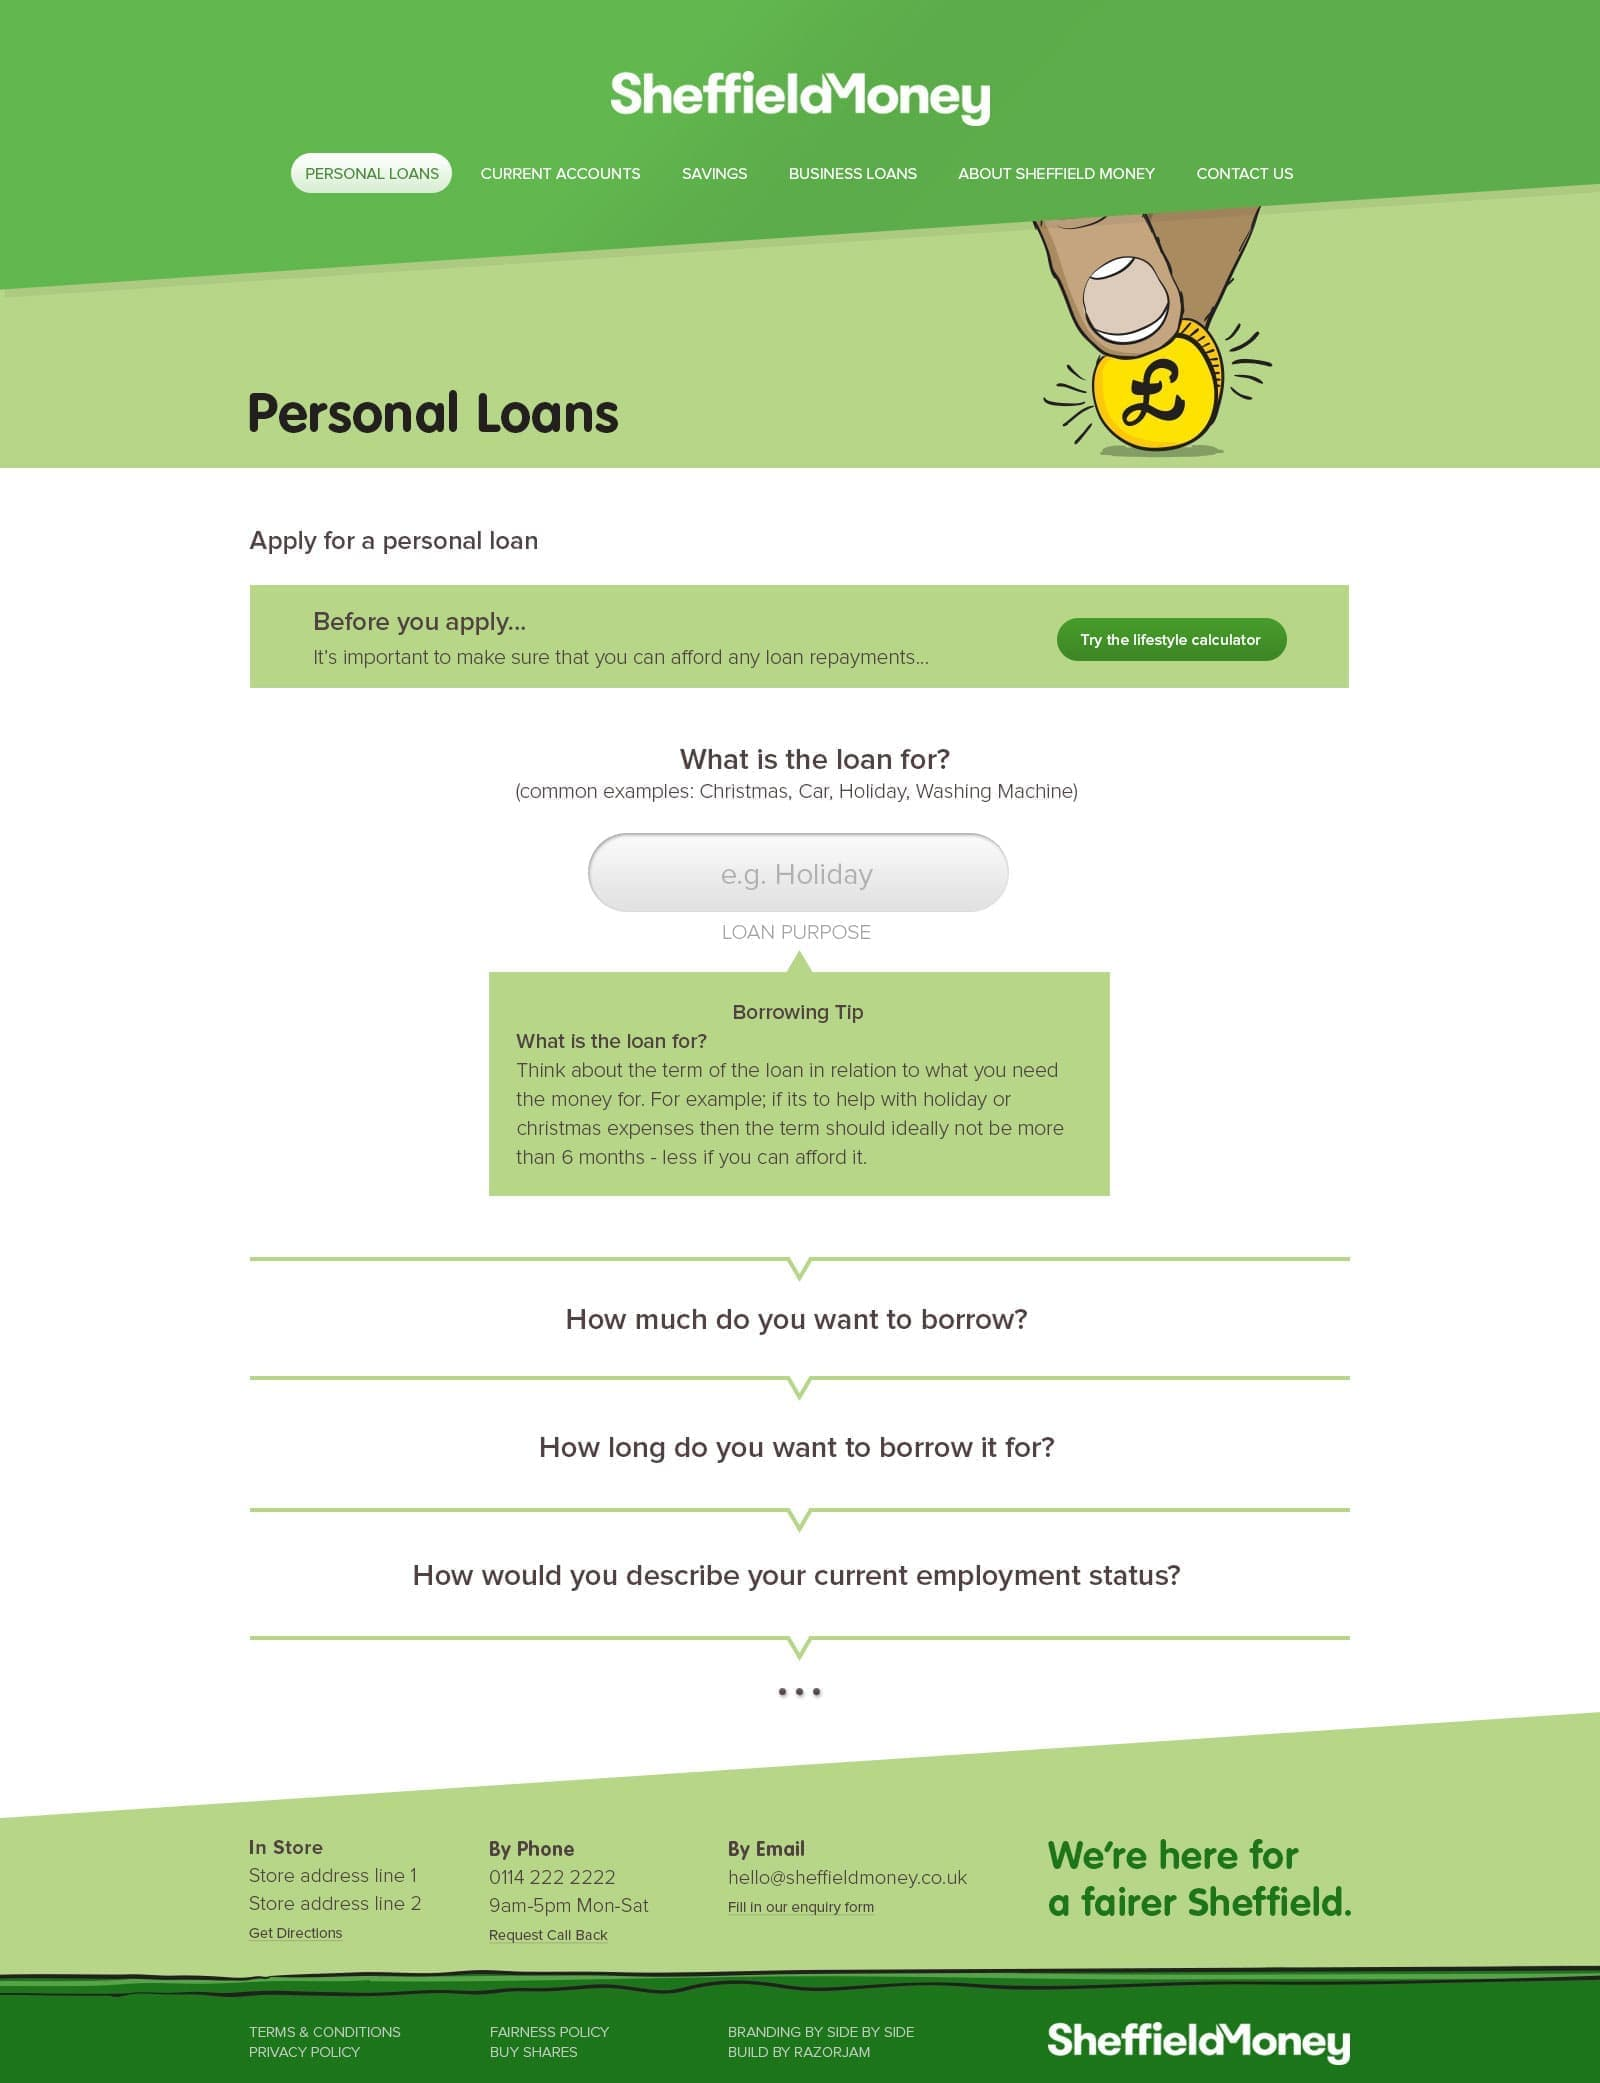 Sheffield Money Personal Loans Finished Page - 2